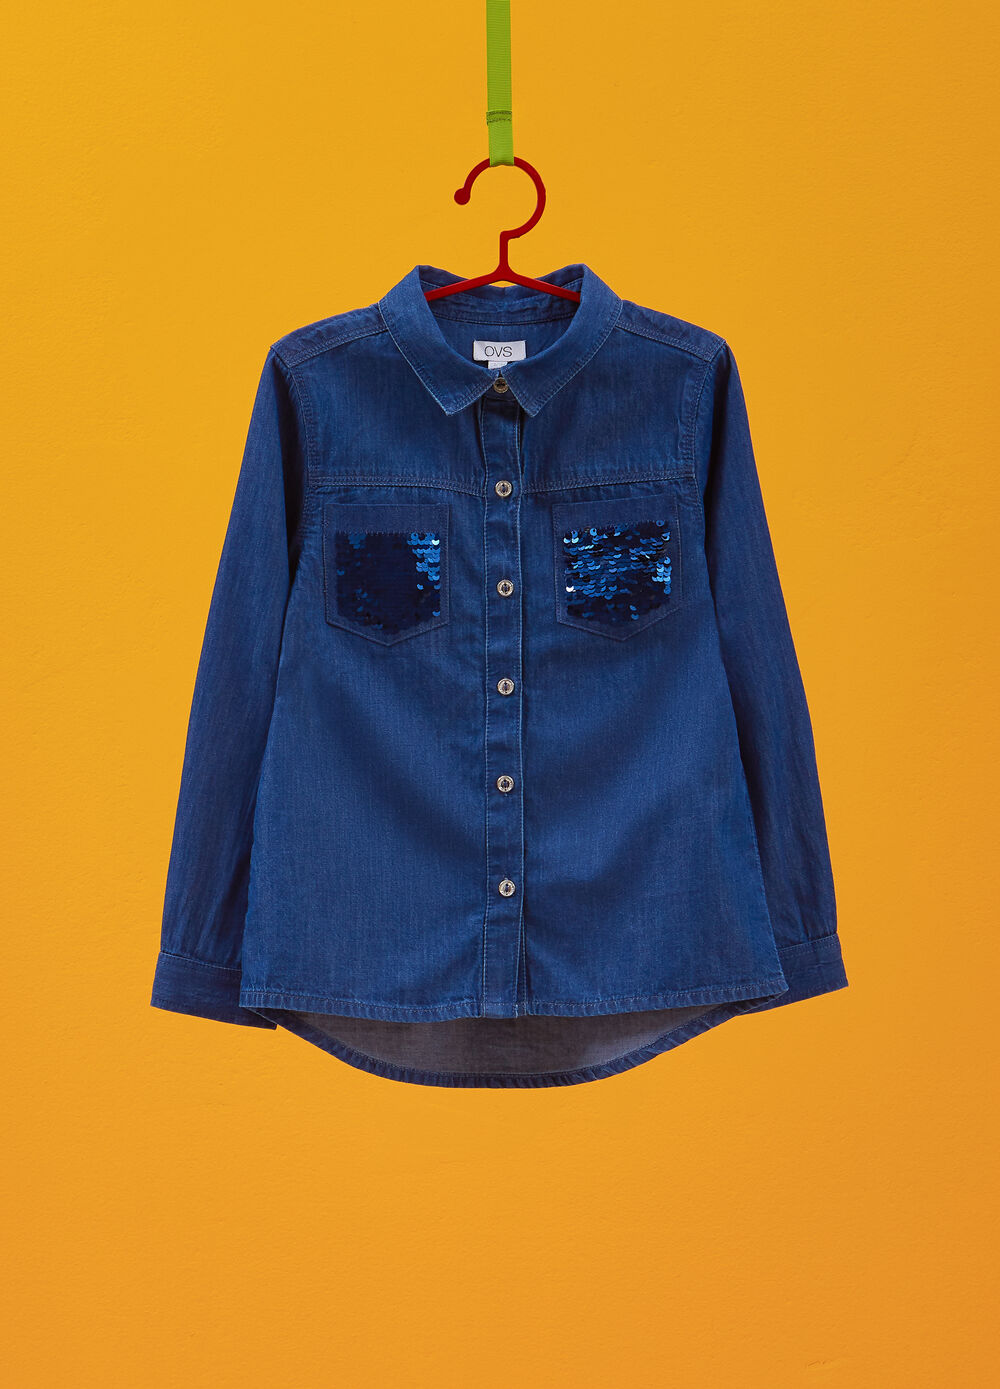 Denim shirt with pockets and sequins